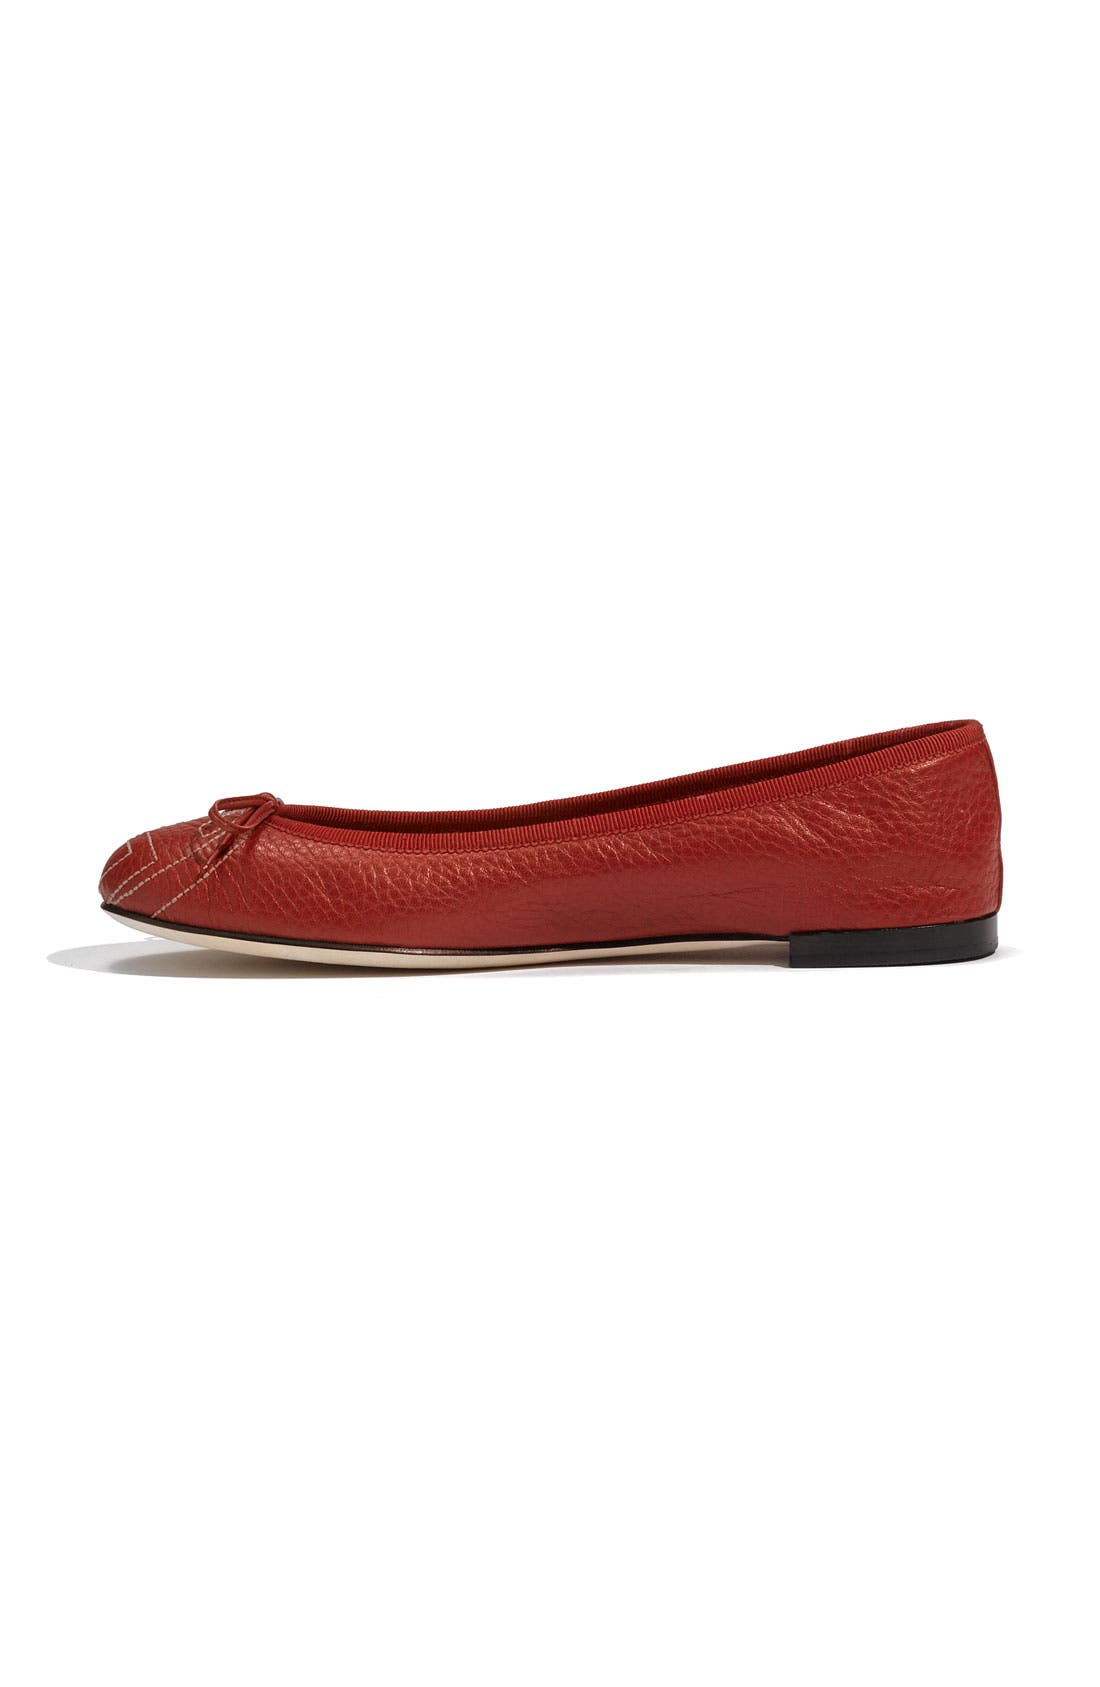 Alternate Image 2  - Gucci 'Soho' Ballerina Flat